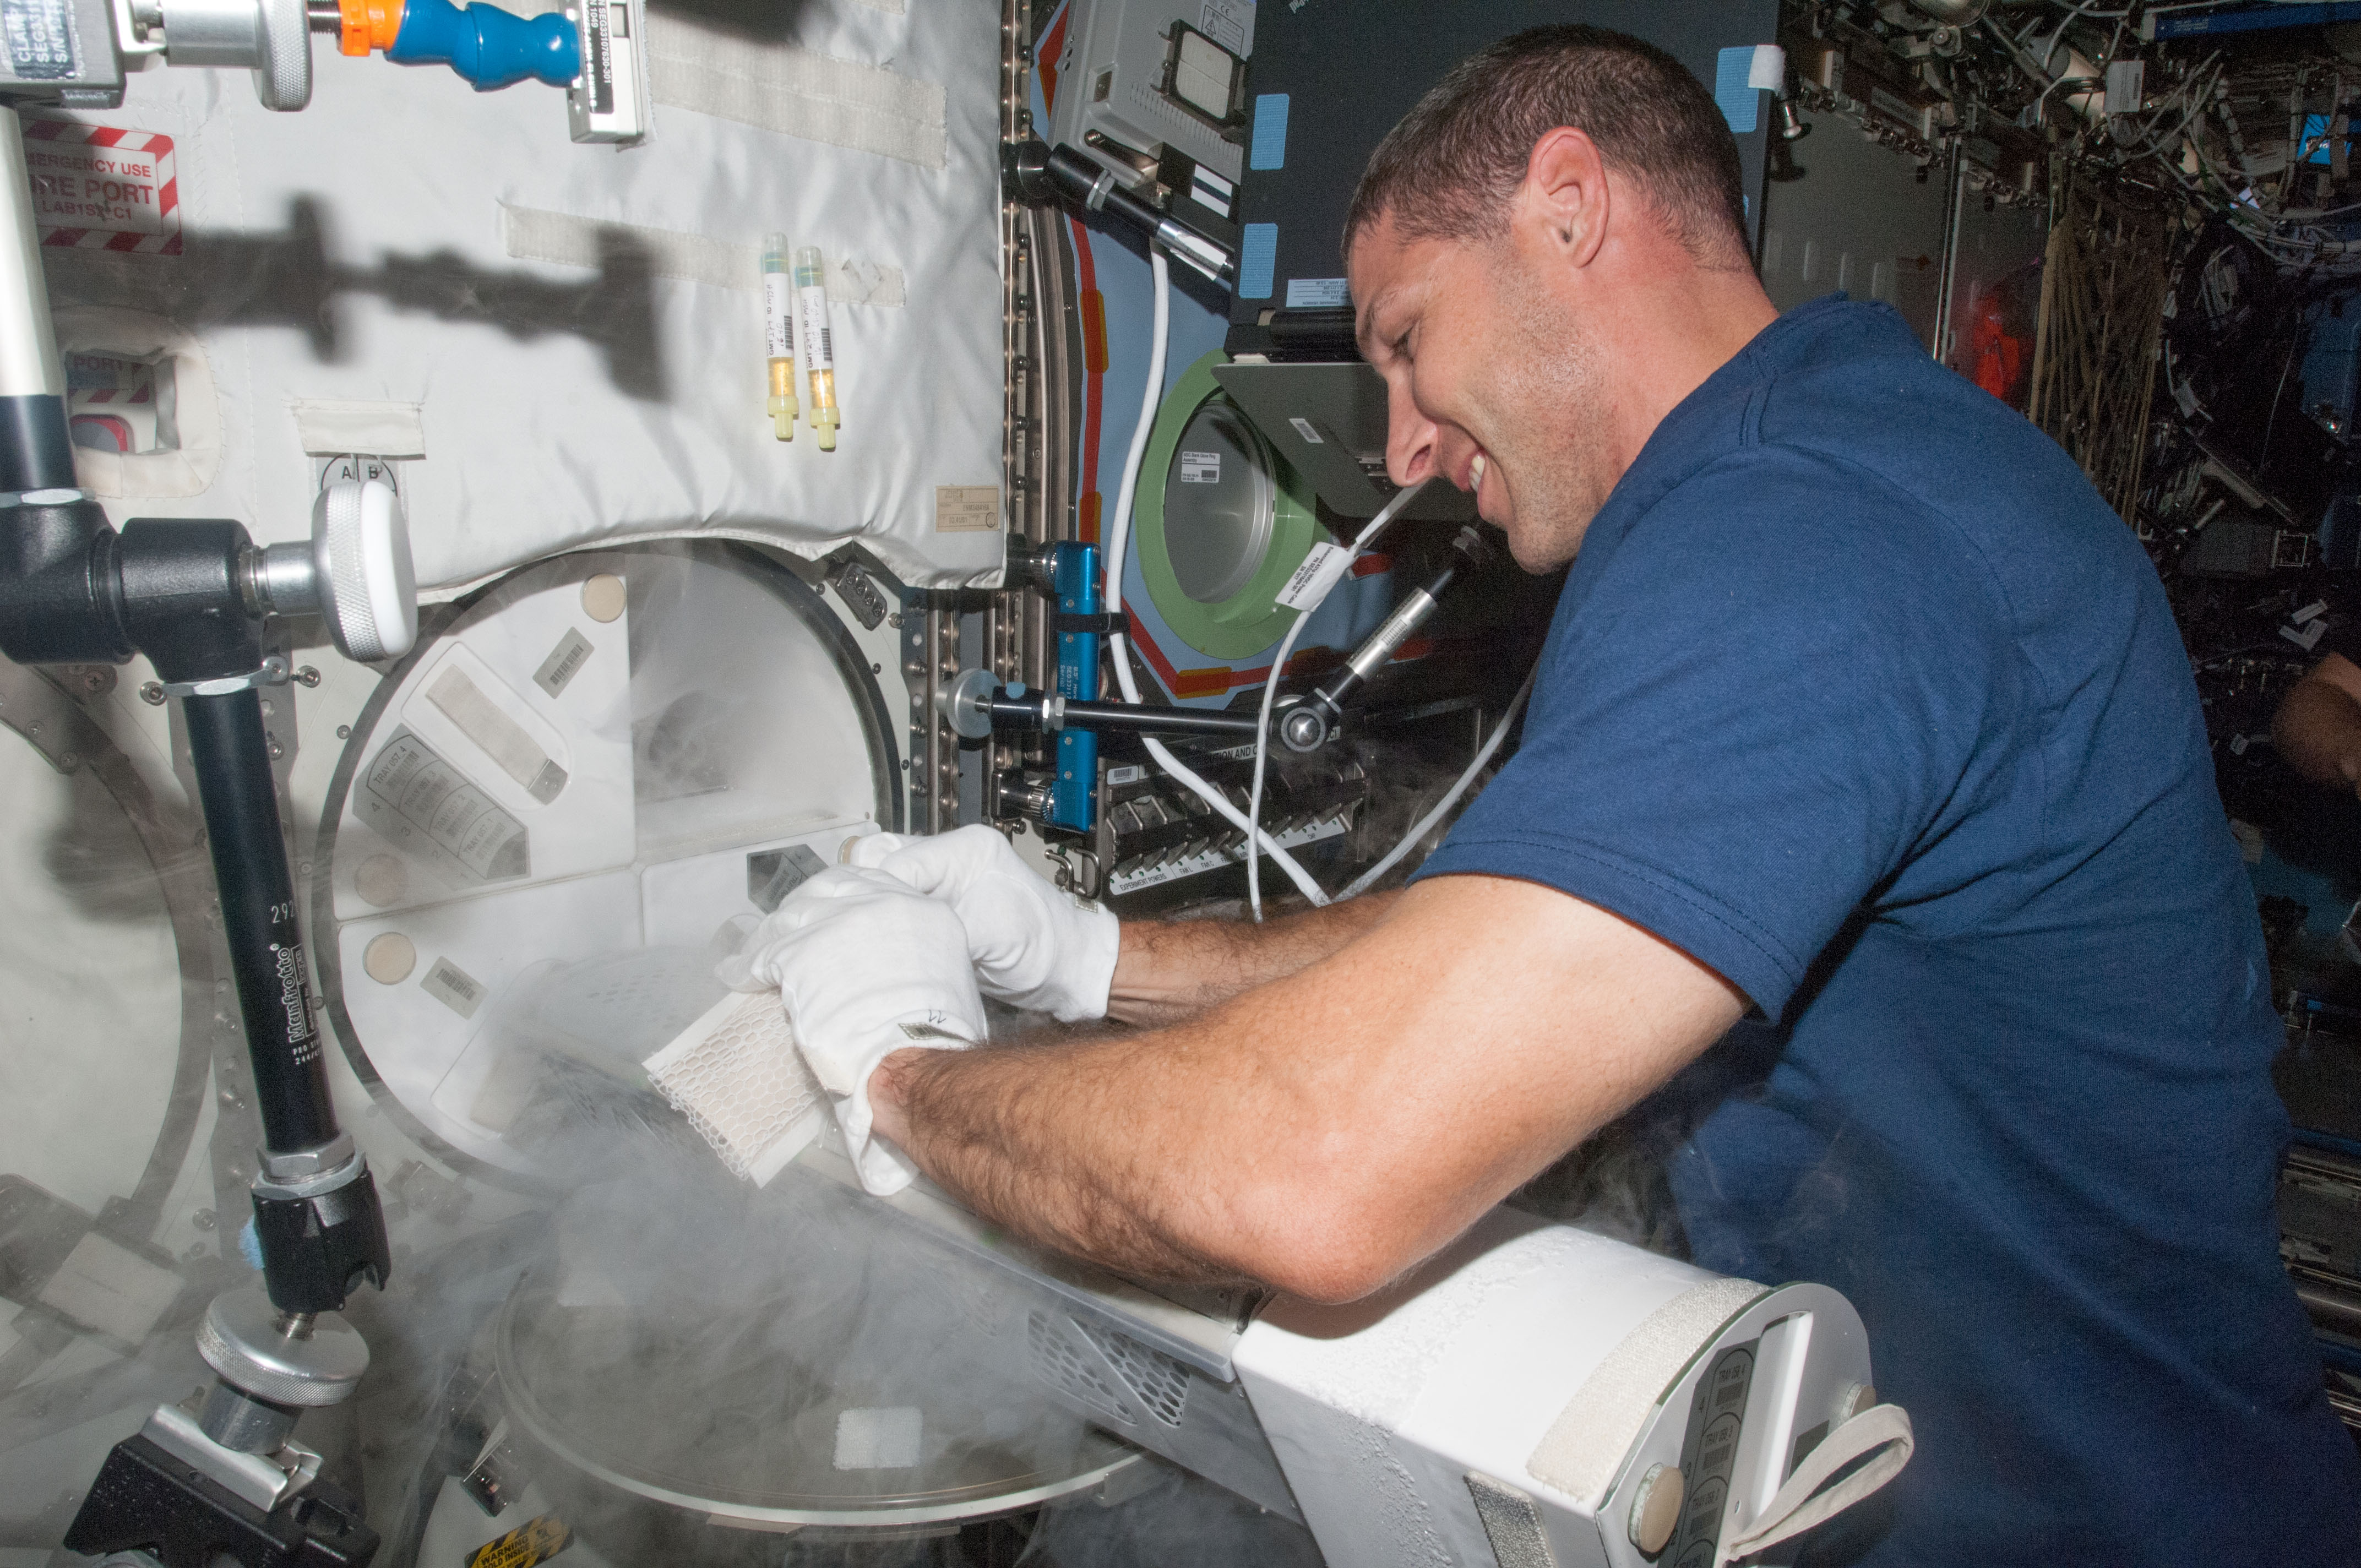 international space station research essay The international space station us national laboratory is a functioning research laboratory with the tools and facilities you need to translate your ground experiments into flight-ready payloads.